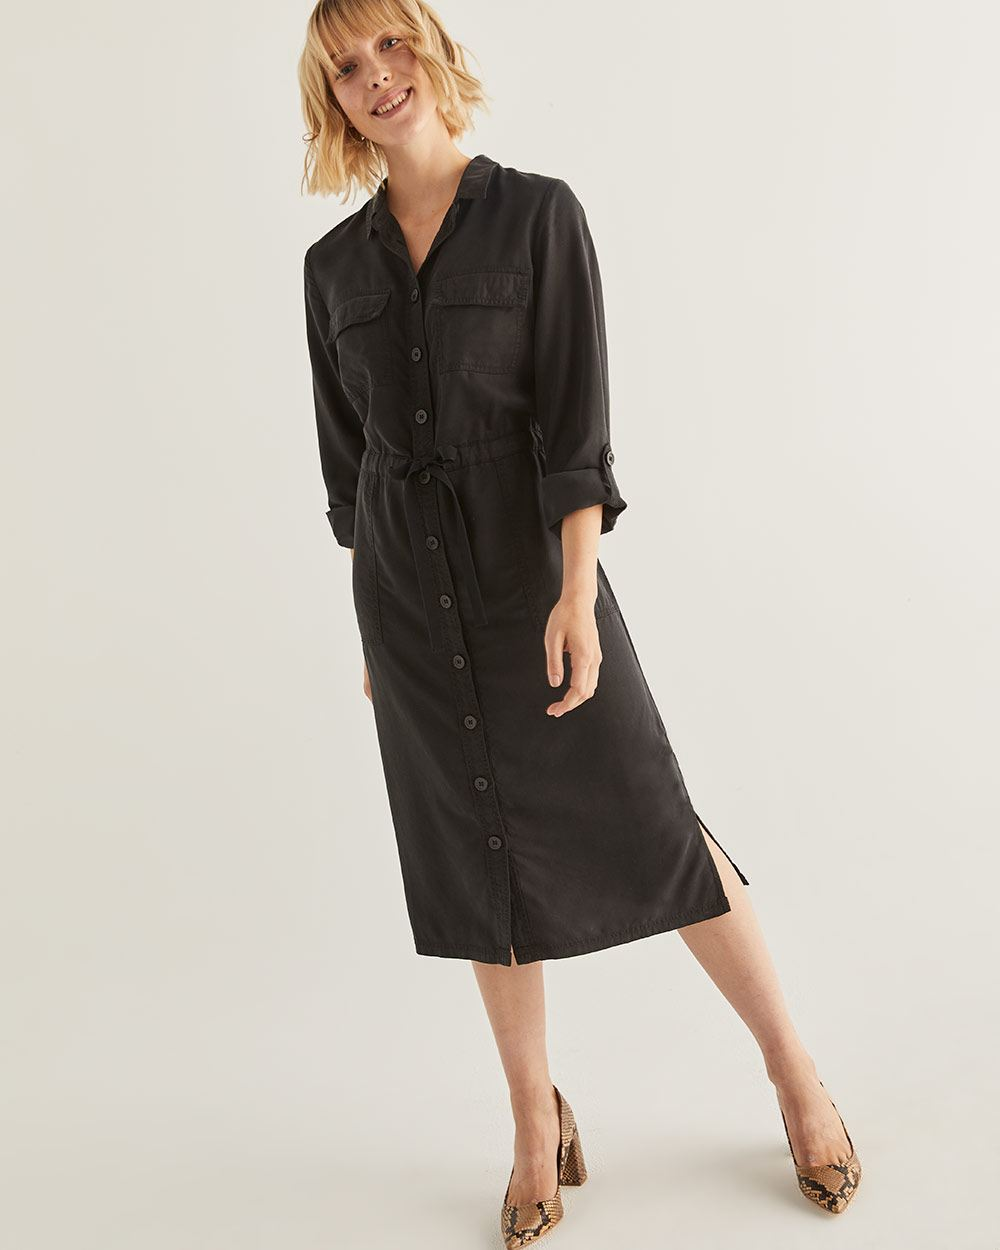 Midi Dress with Pockets